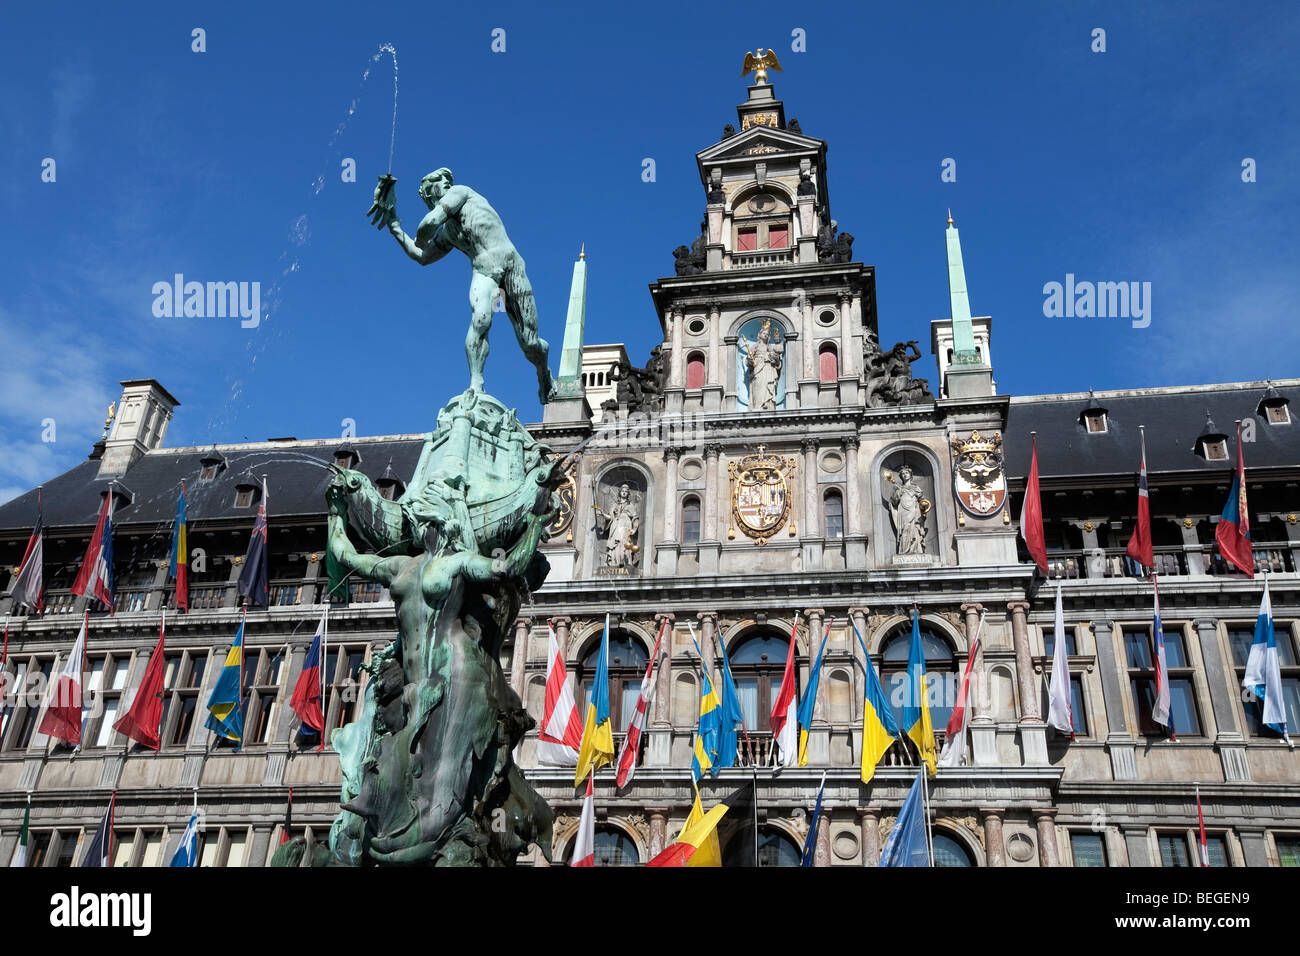 Brabo Fountain in front of the Town Hall in the Grote Markt. - Stock Image